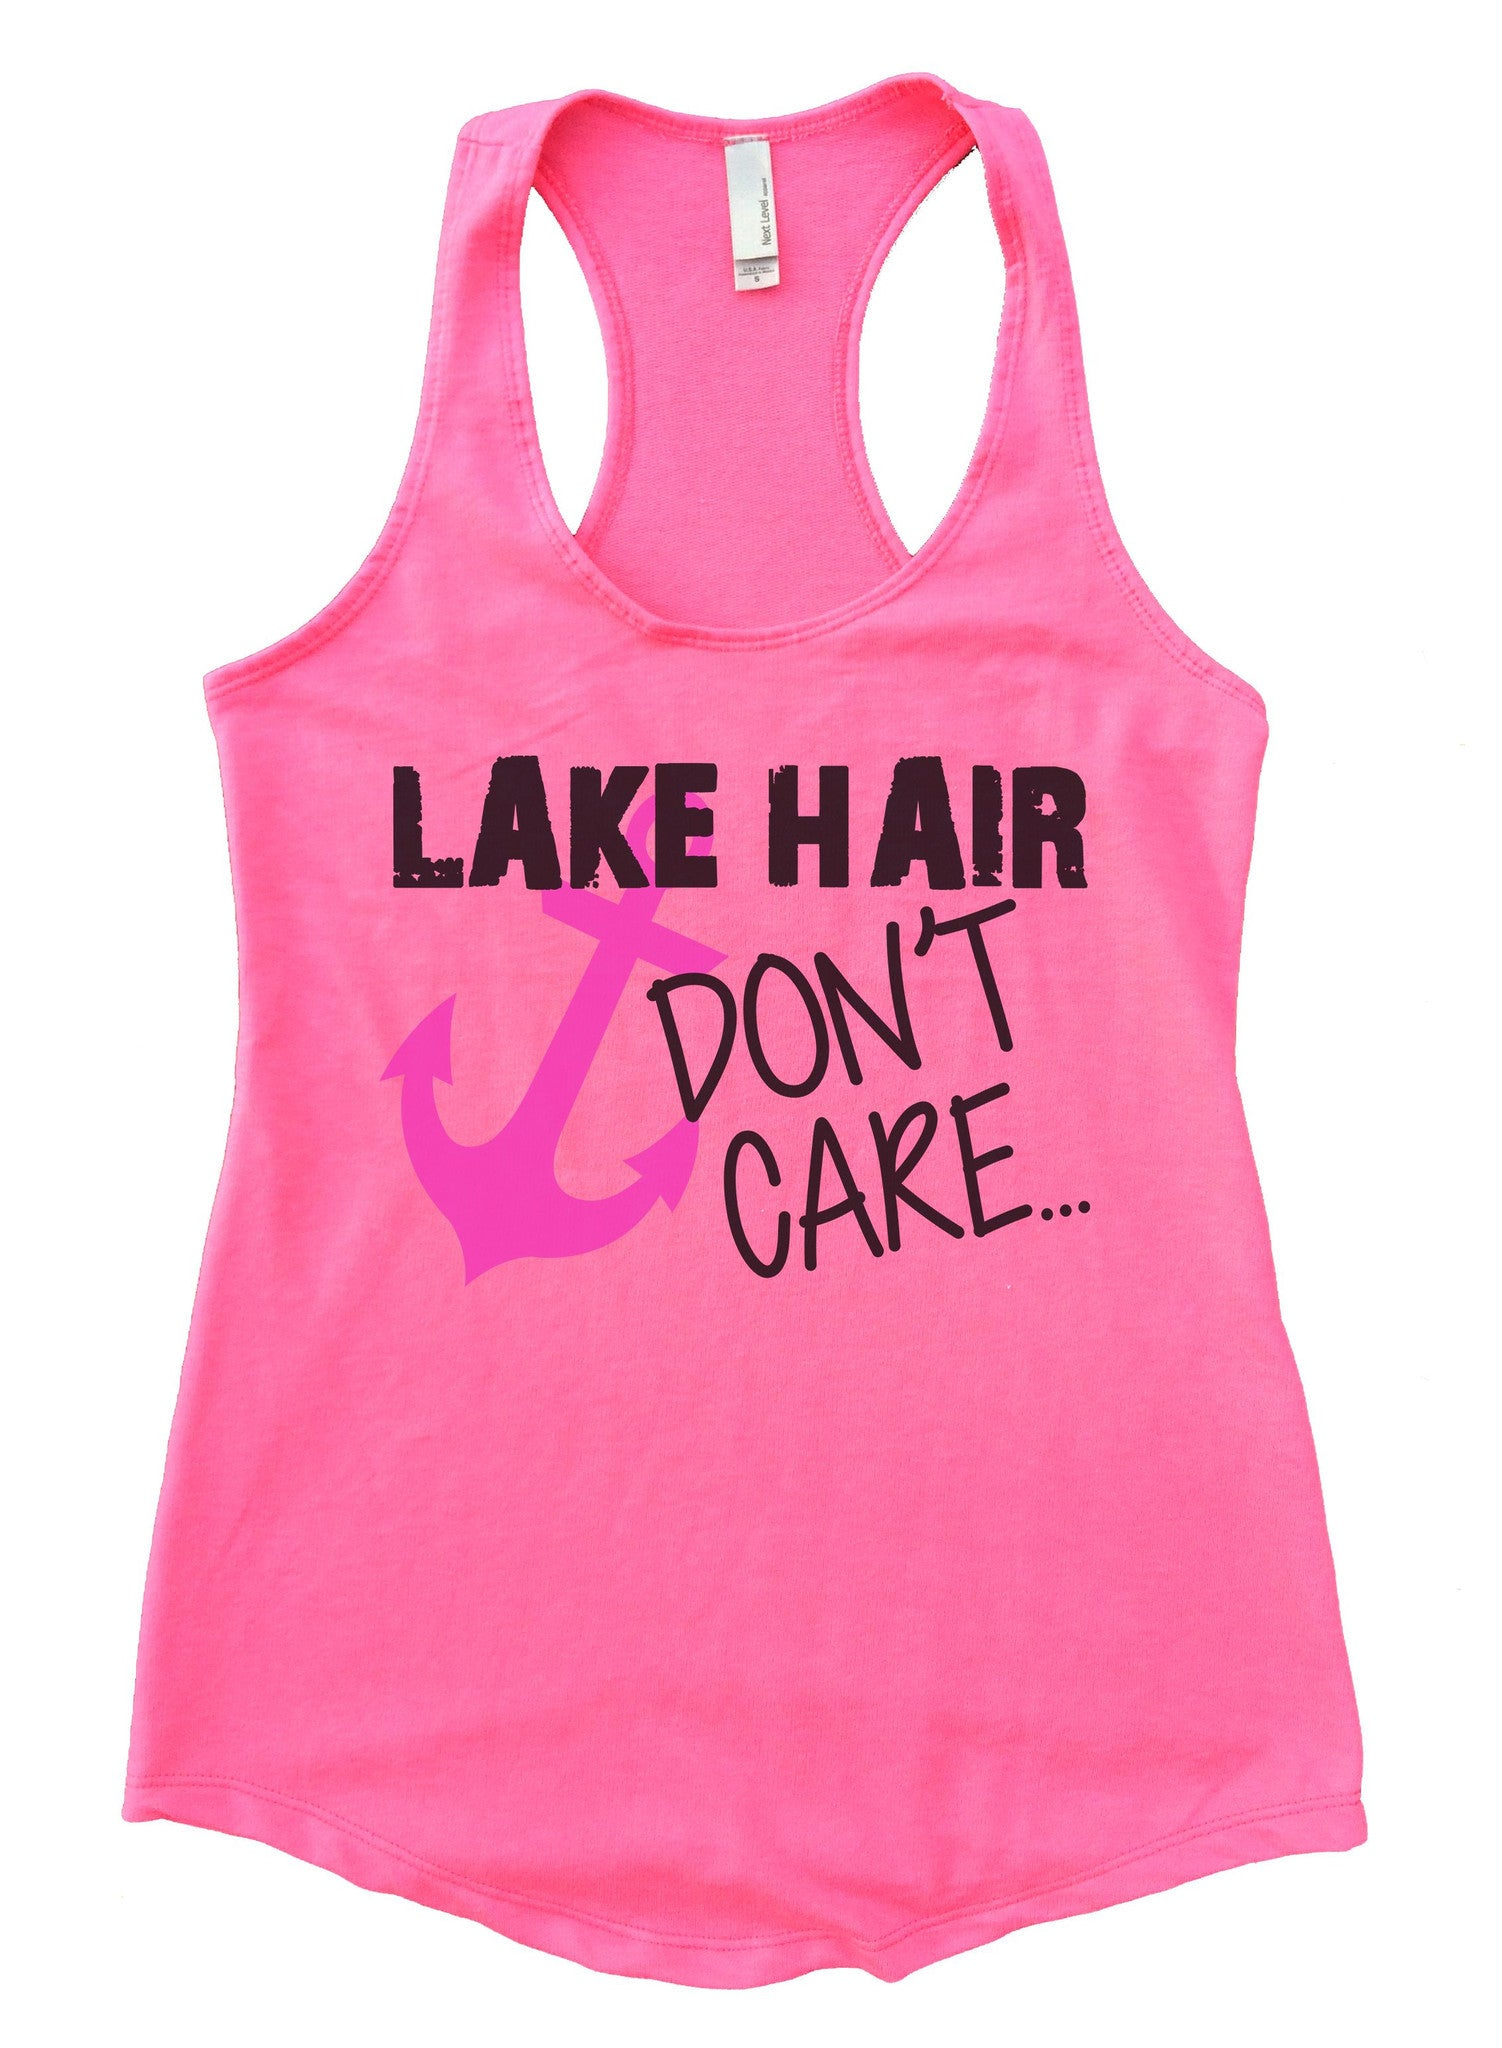 Lake Hair Dont't Care Womens Workout Tank Top F693 - Funny Shirts Tank Tops Burnouts and Triblends  - 5